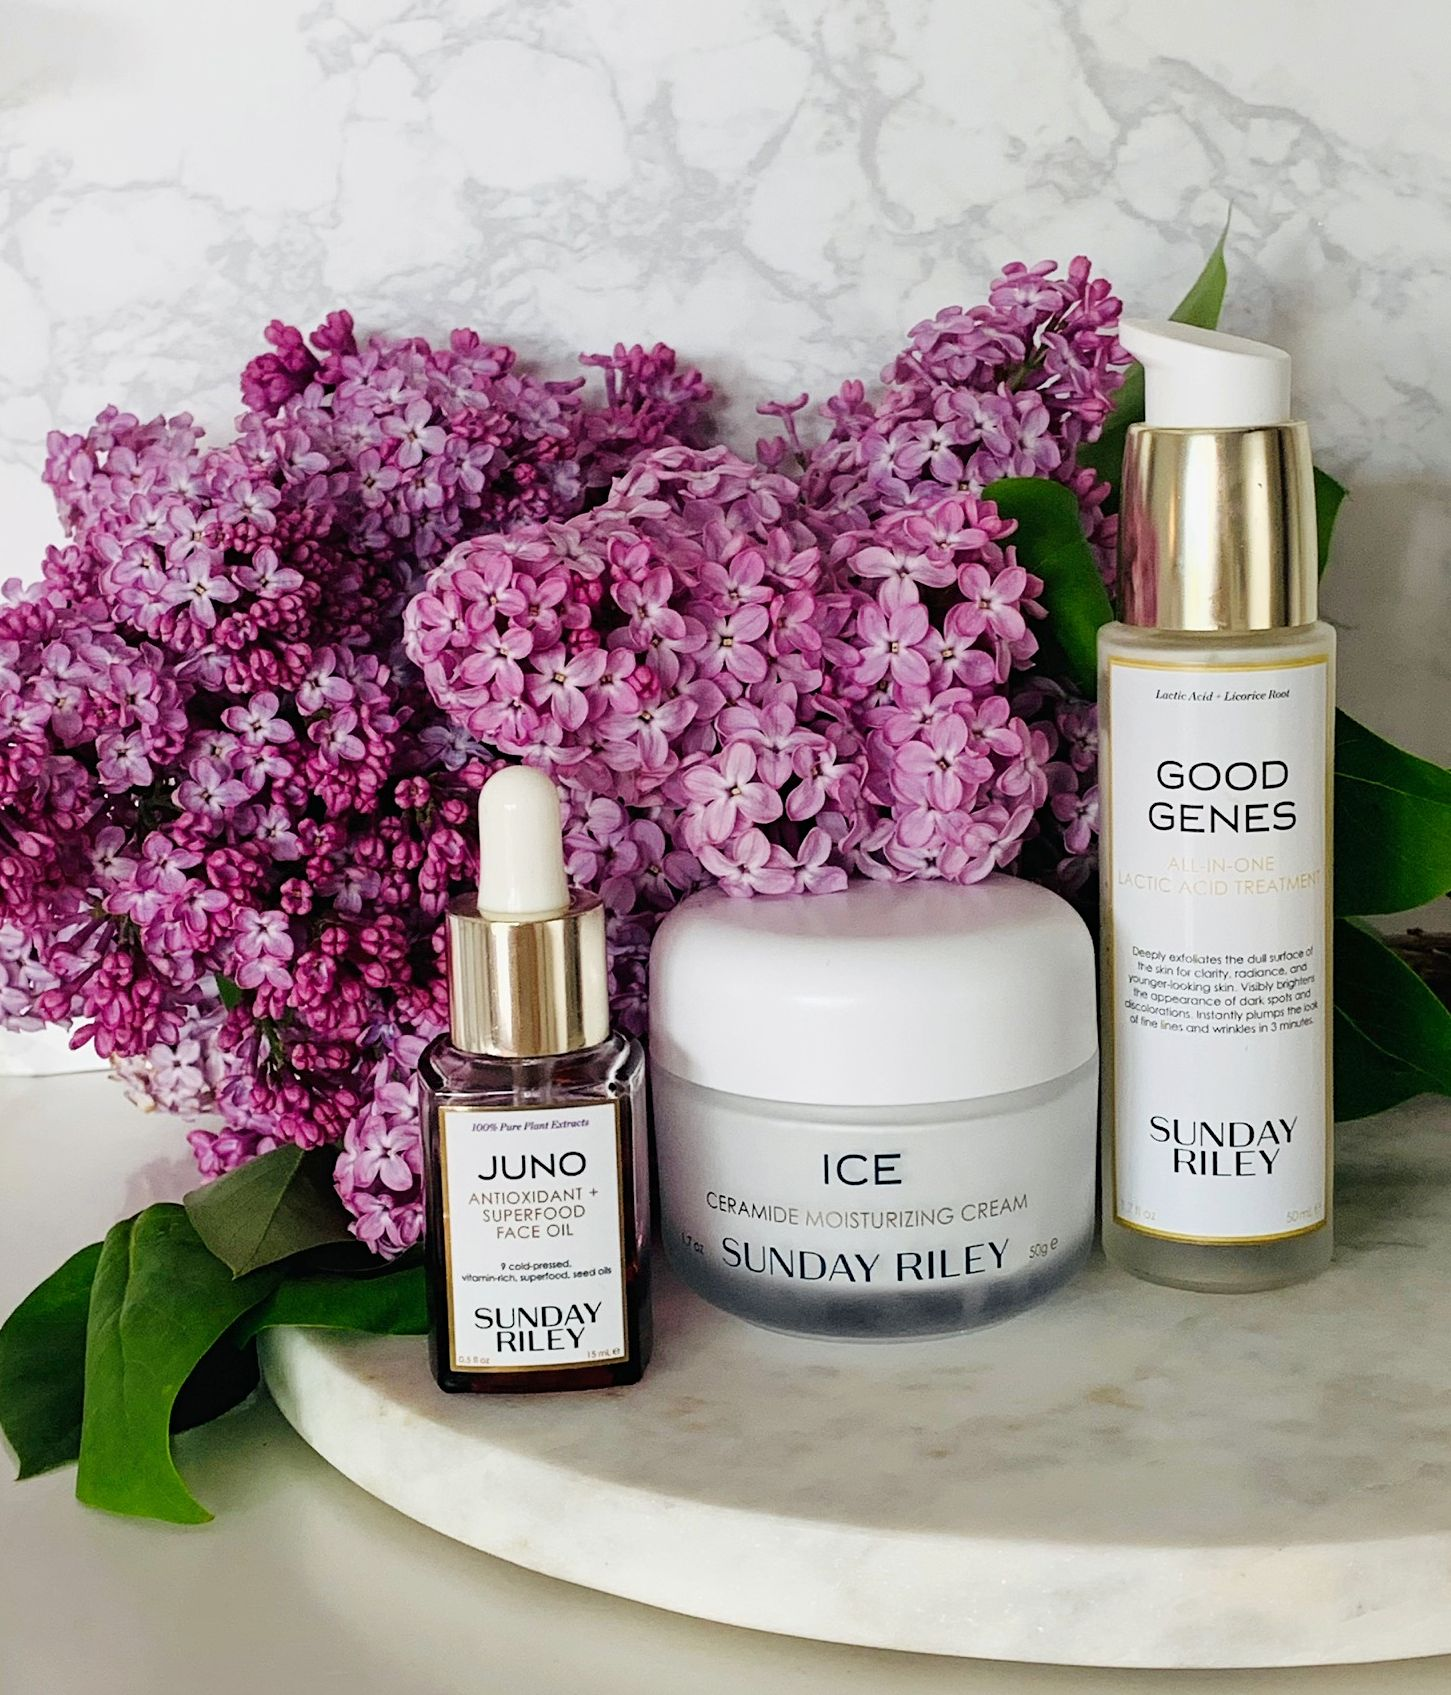 My Sunday Riley Top Picks - Cult Beauty Brand Of The Month